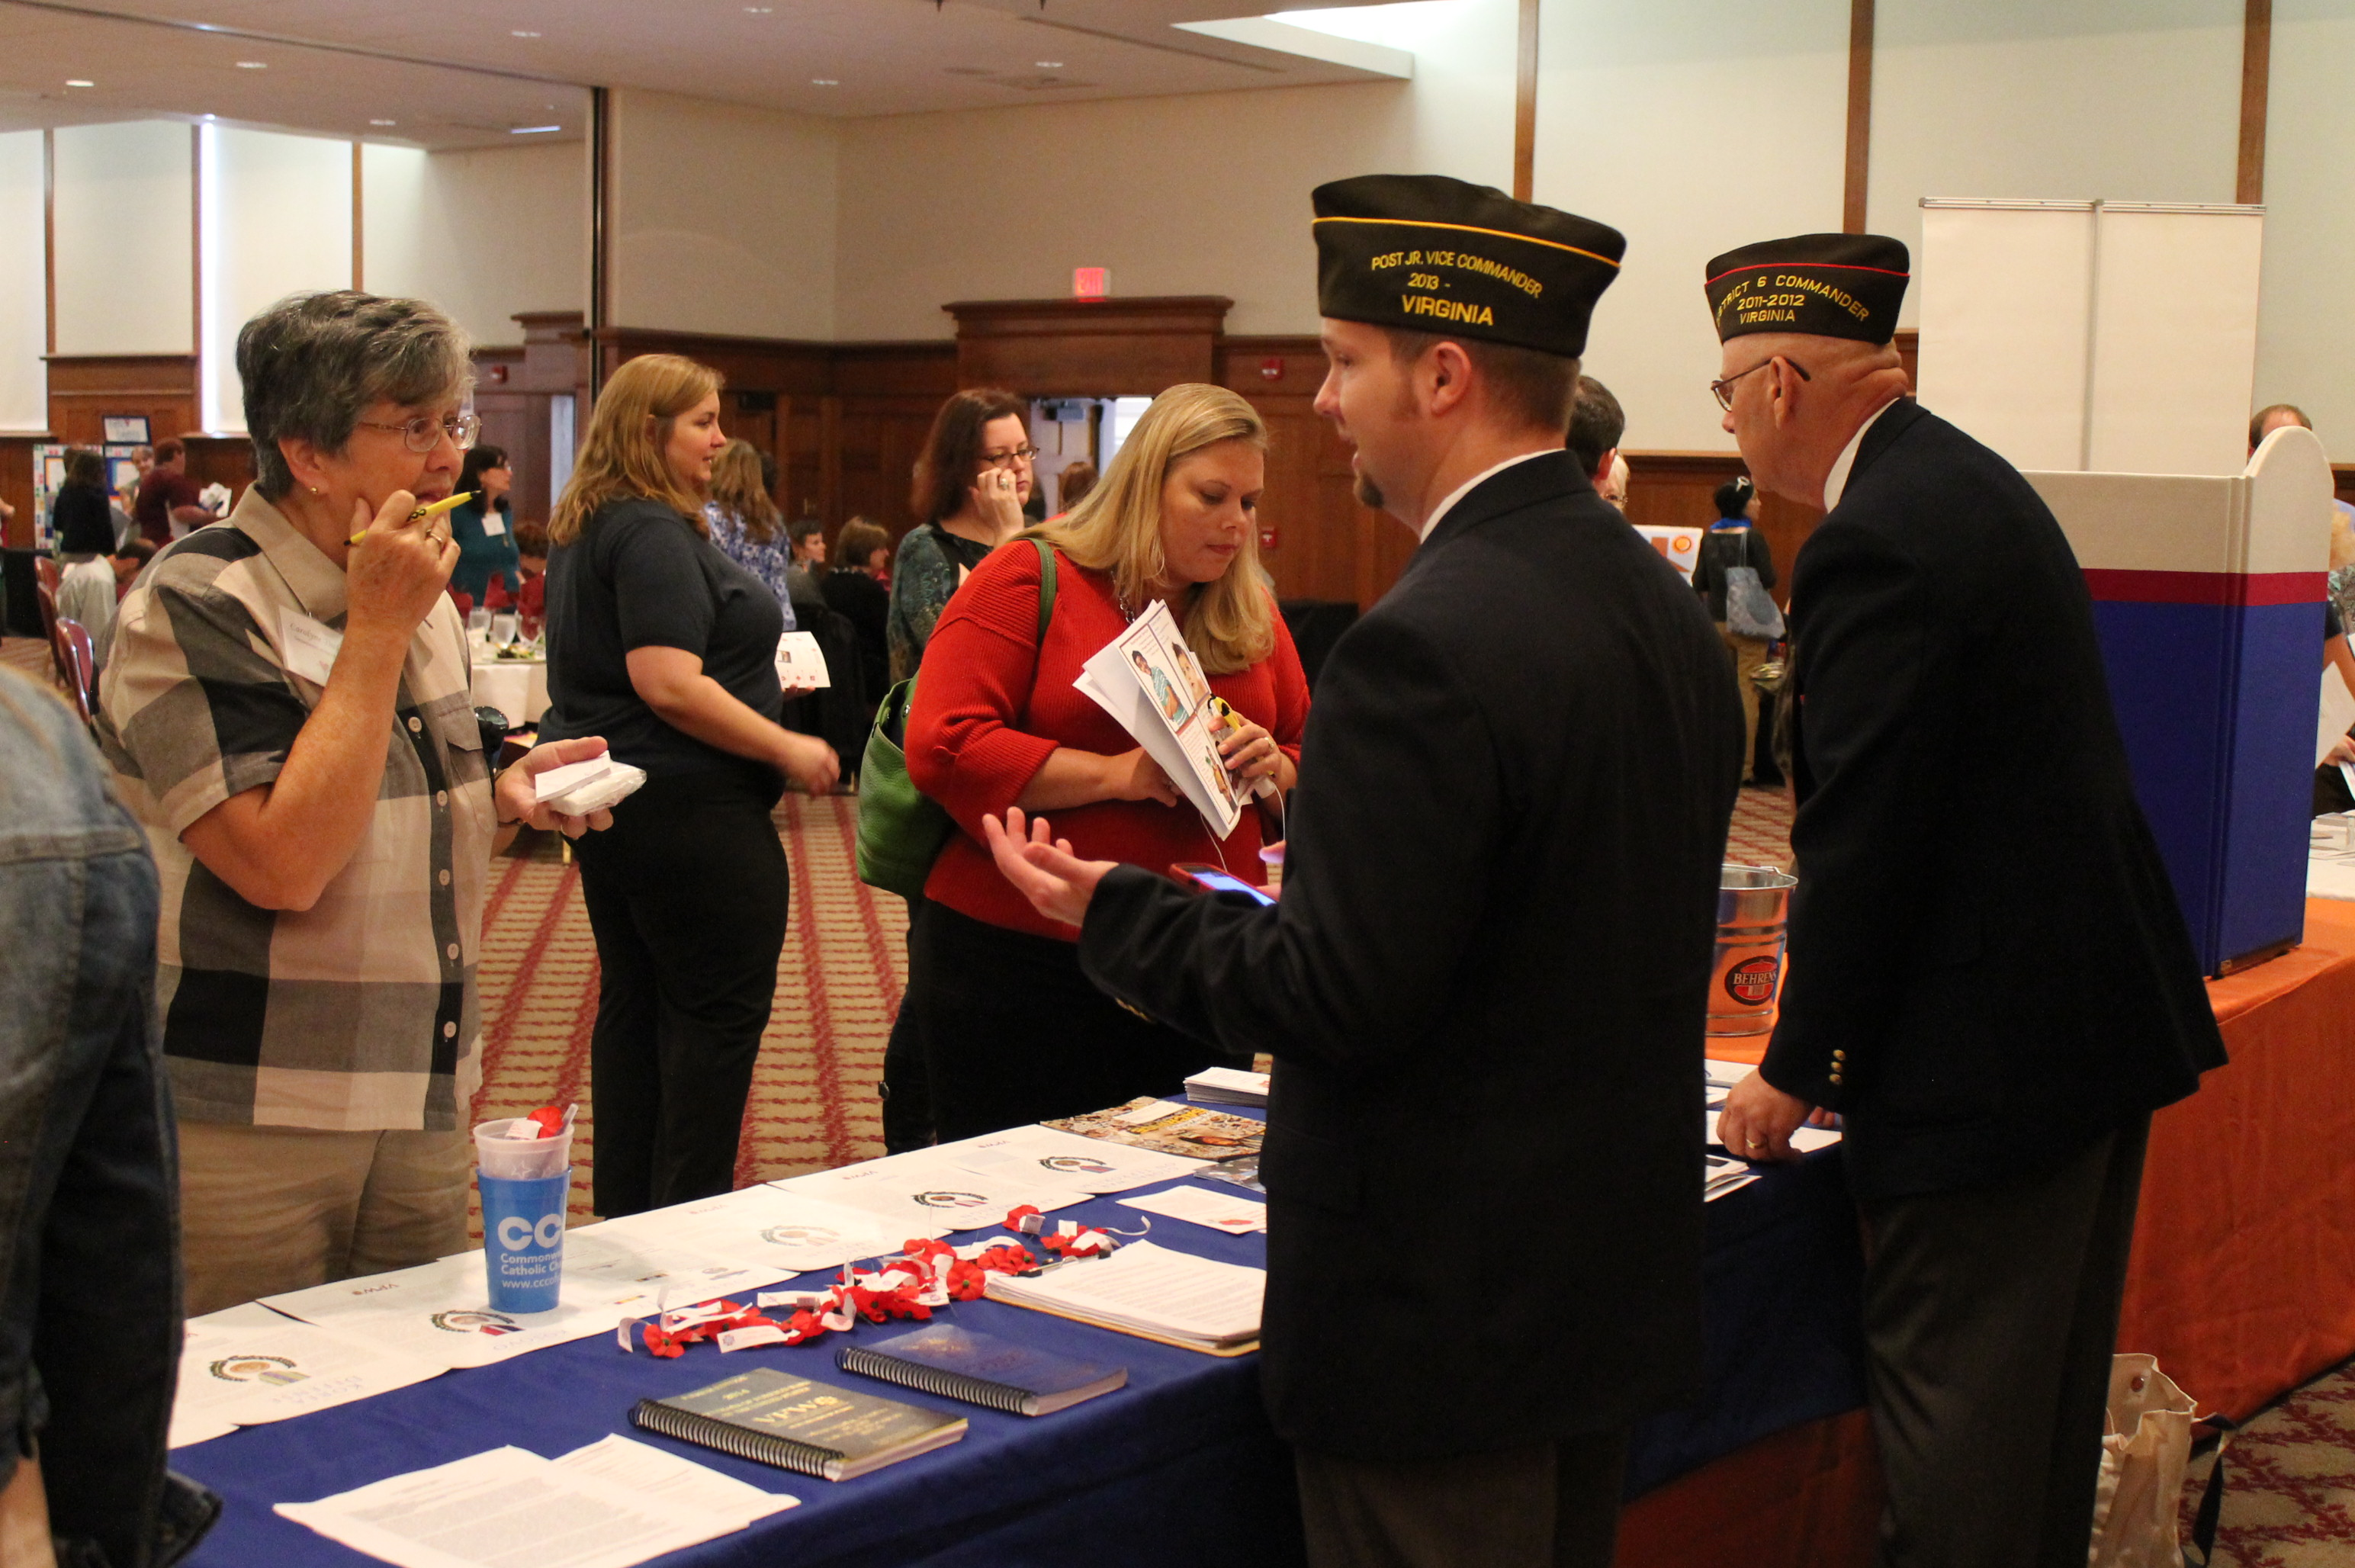 Representatives from the Veterans of Foreign Wars speak with guests at the Sept. 25, 2013, Commonwealth of Virginia Kick-off Luncheon.